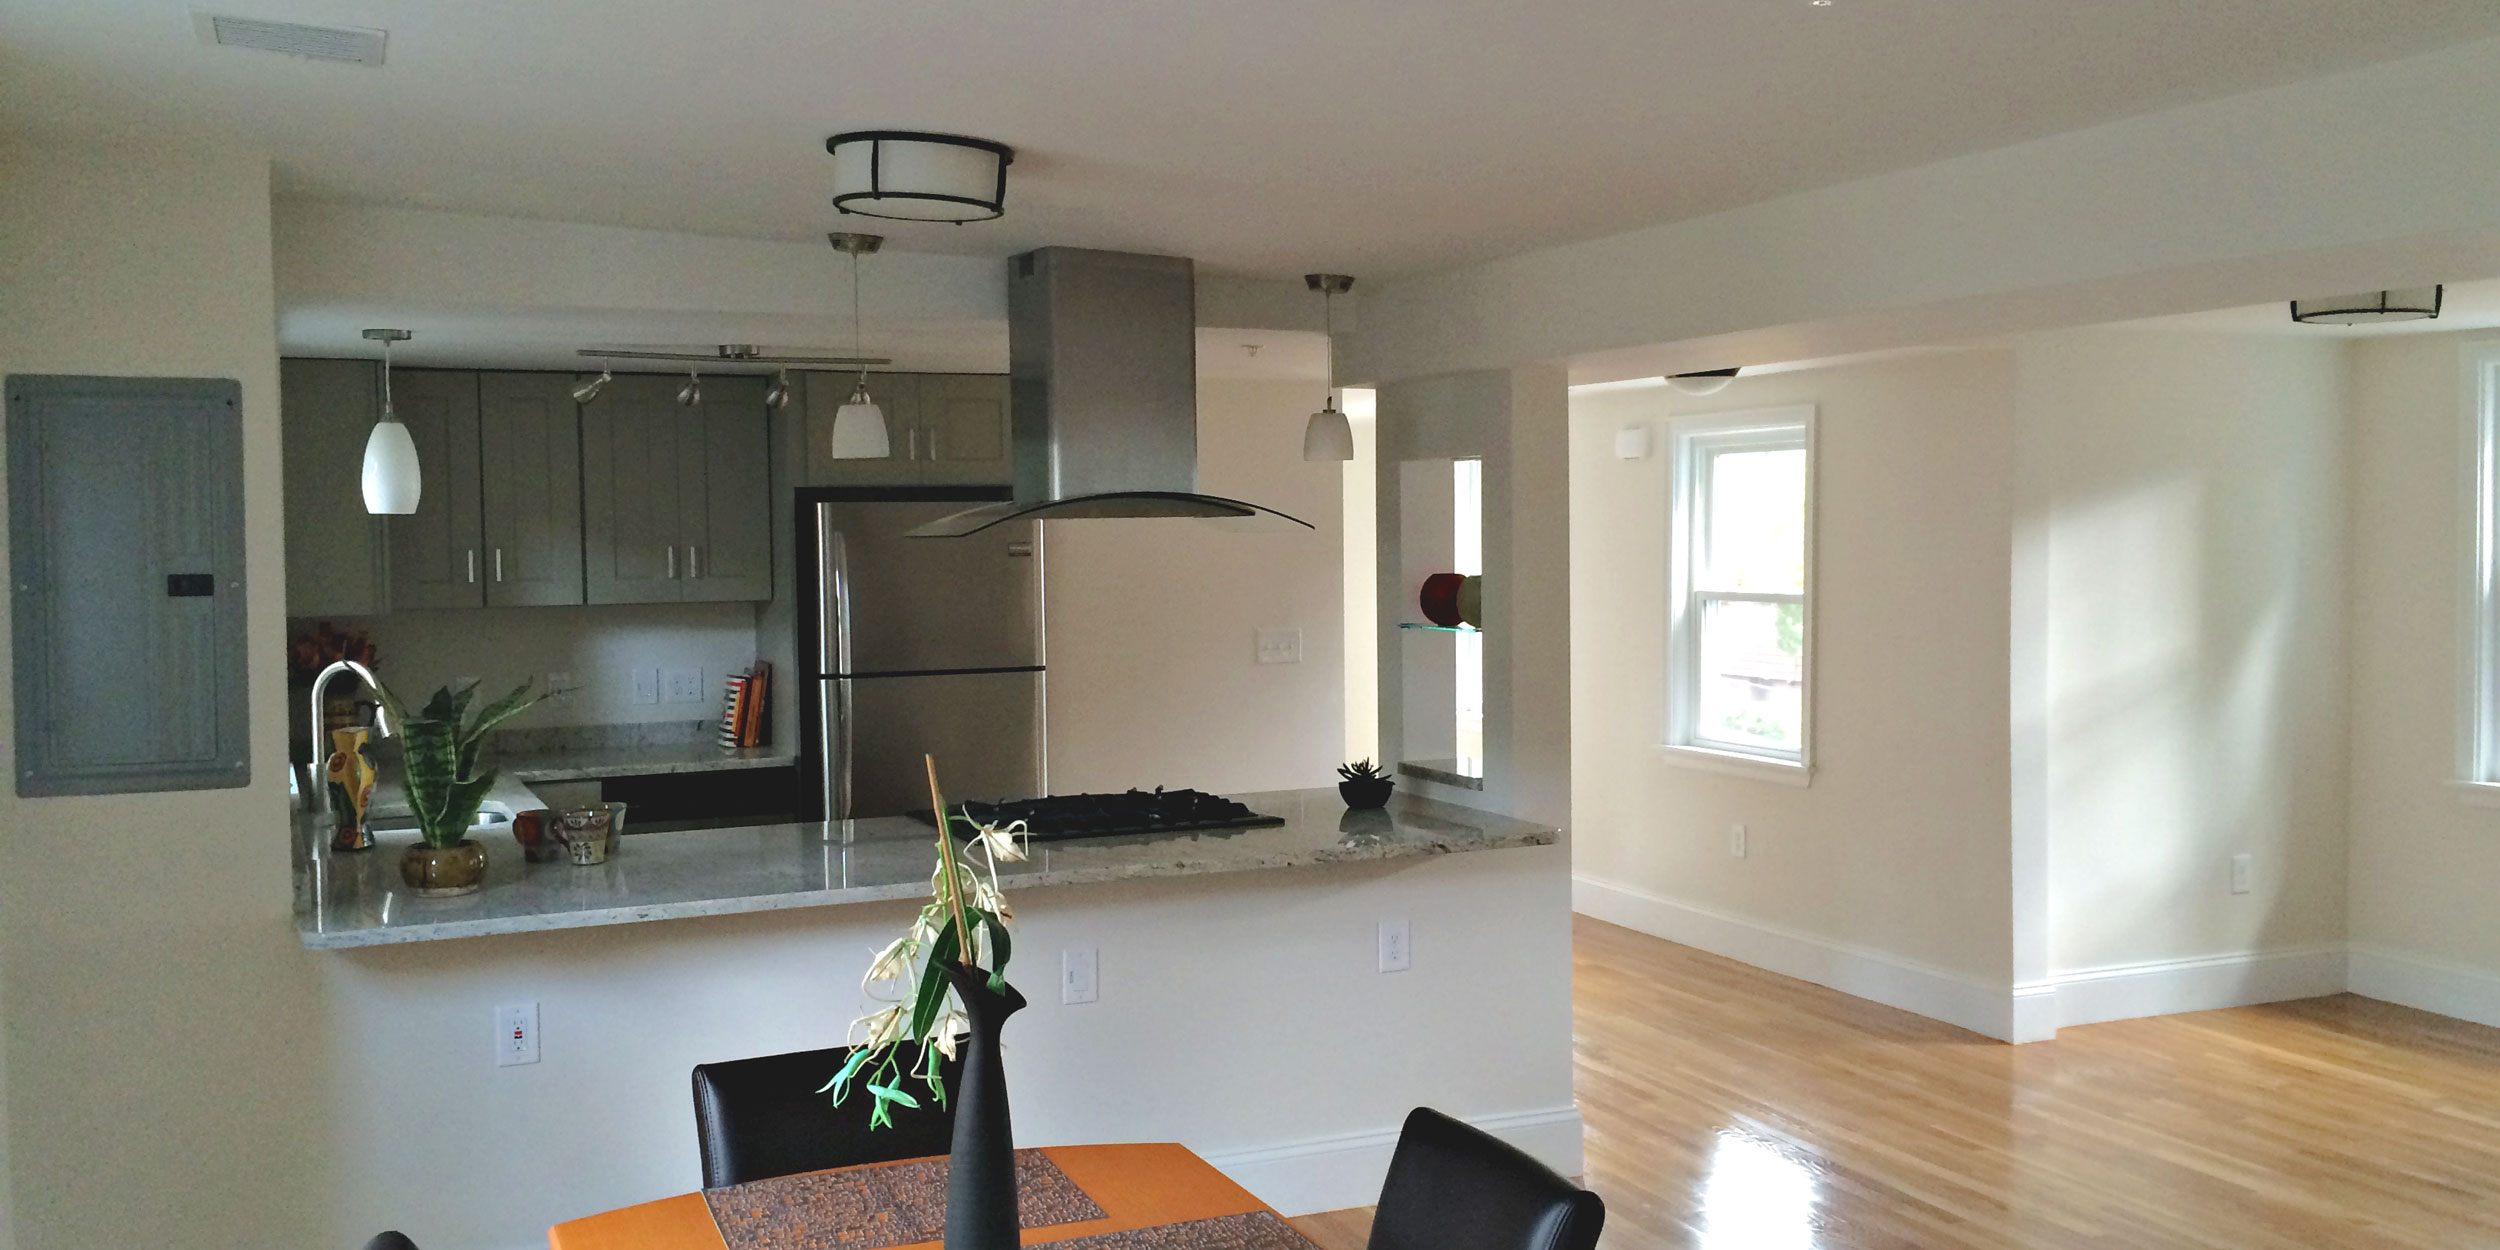 A kitchen painted white using interior latex paint in Wakefield, MA